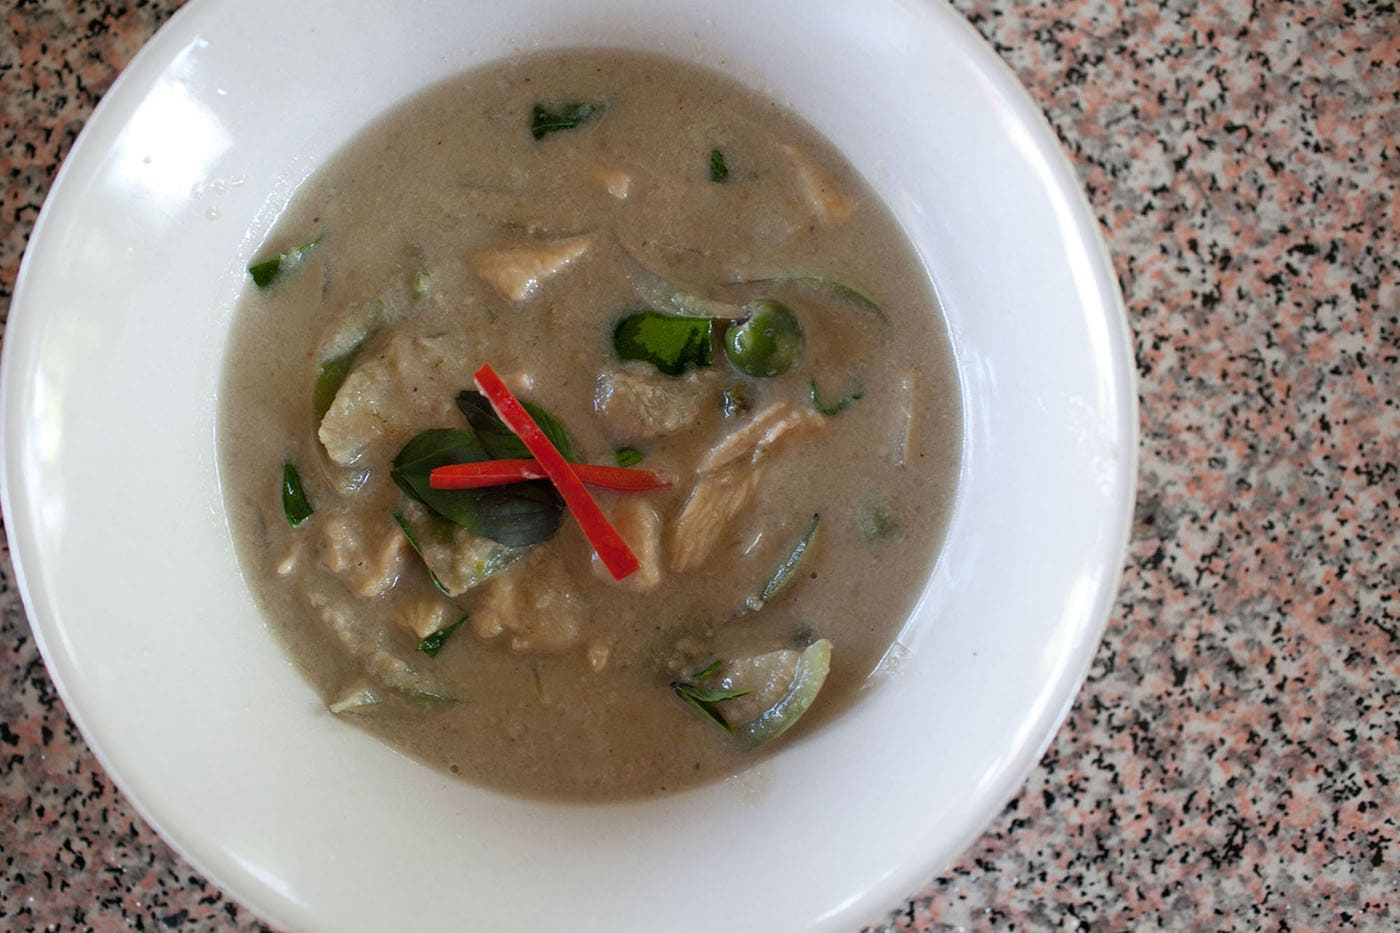 Thai Green Curry with Chicken Recipe (Gaeng Kiew Waan Gai)